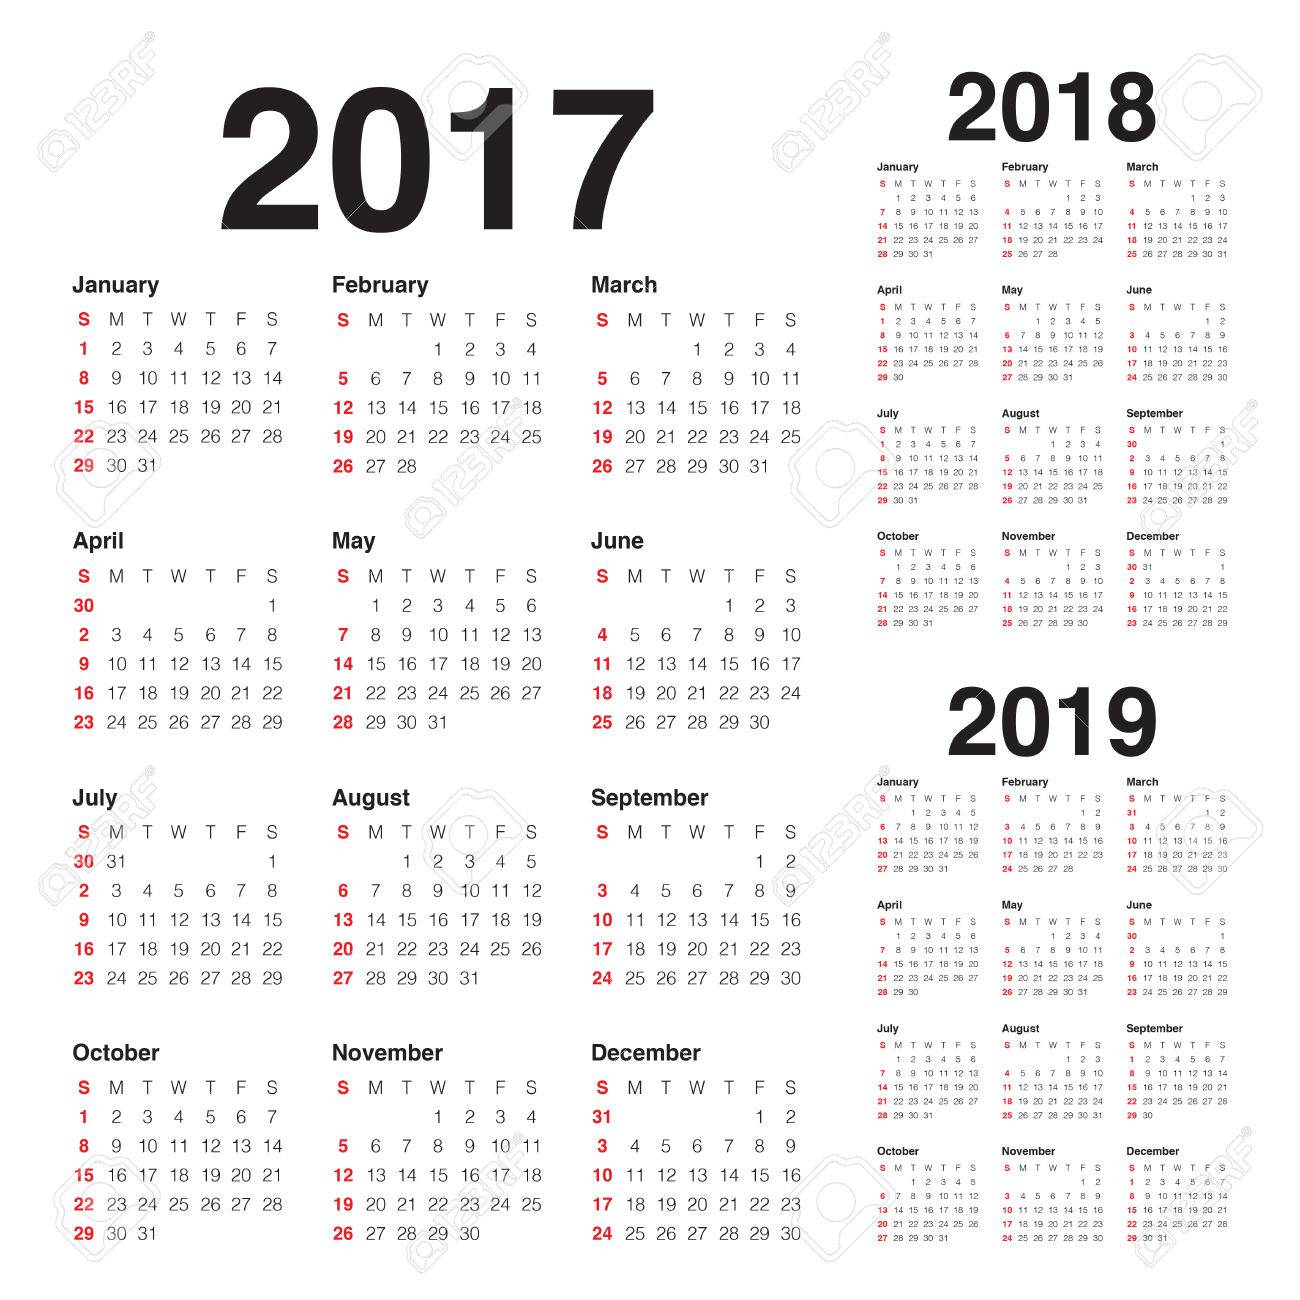 simple calendar template for 2017 2018 and 2019 stock vector 67720960